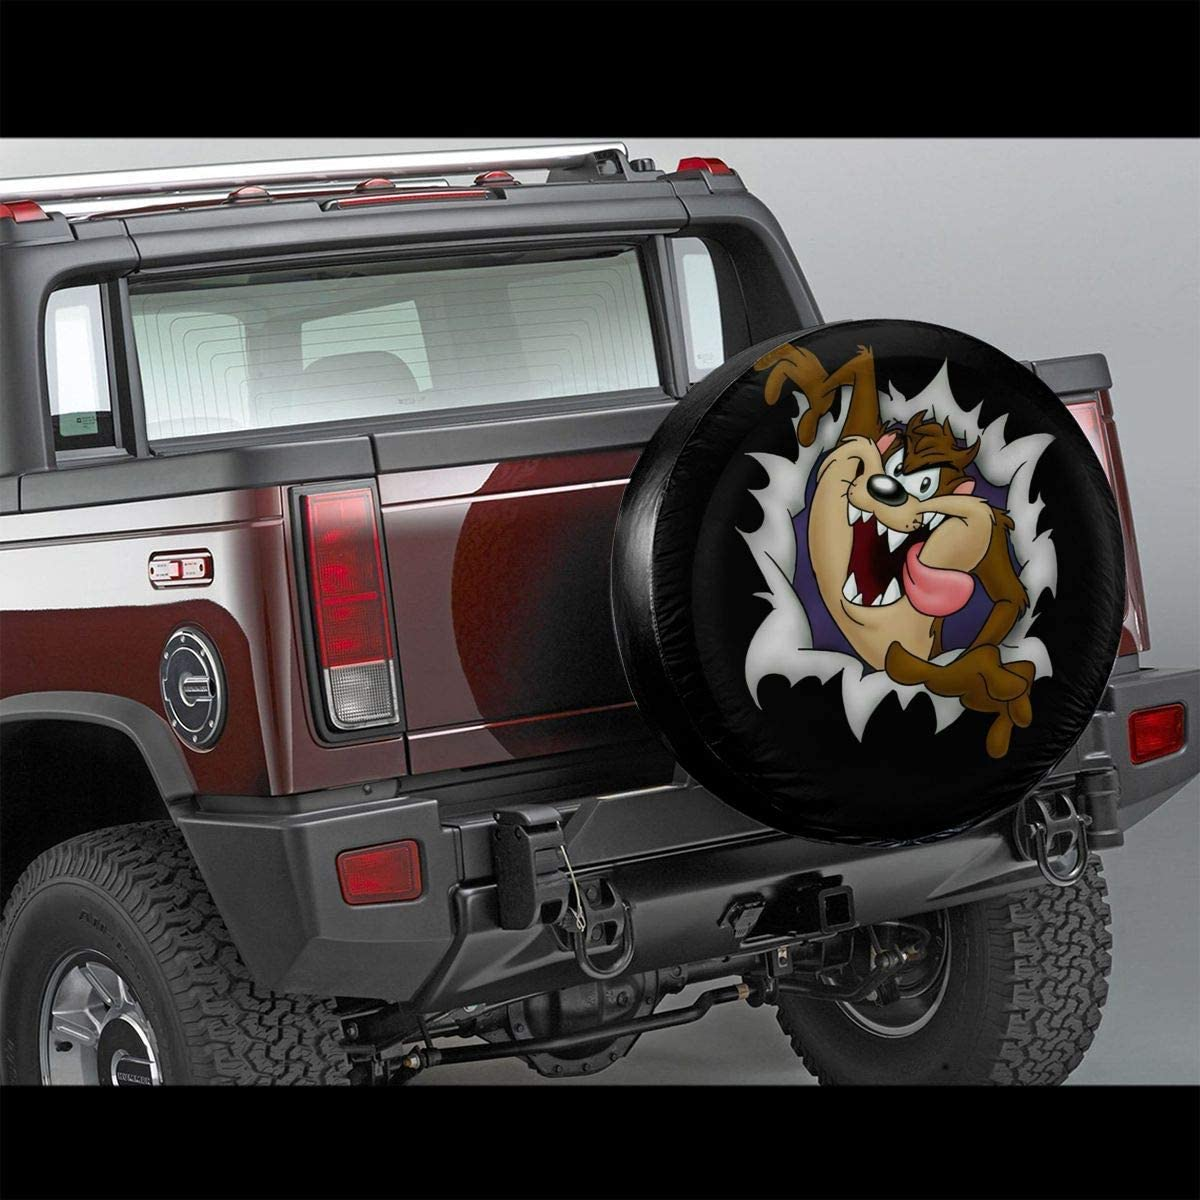 14,15,16,17 Inch fsfsdafsa Looney Tunes Tasmanian Devil Taz Potable Polyester Universal Spare Wheel Tire Cover Wheel Covers for Jeep Trailer RV SUV Truck Travel Trailer Accessories